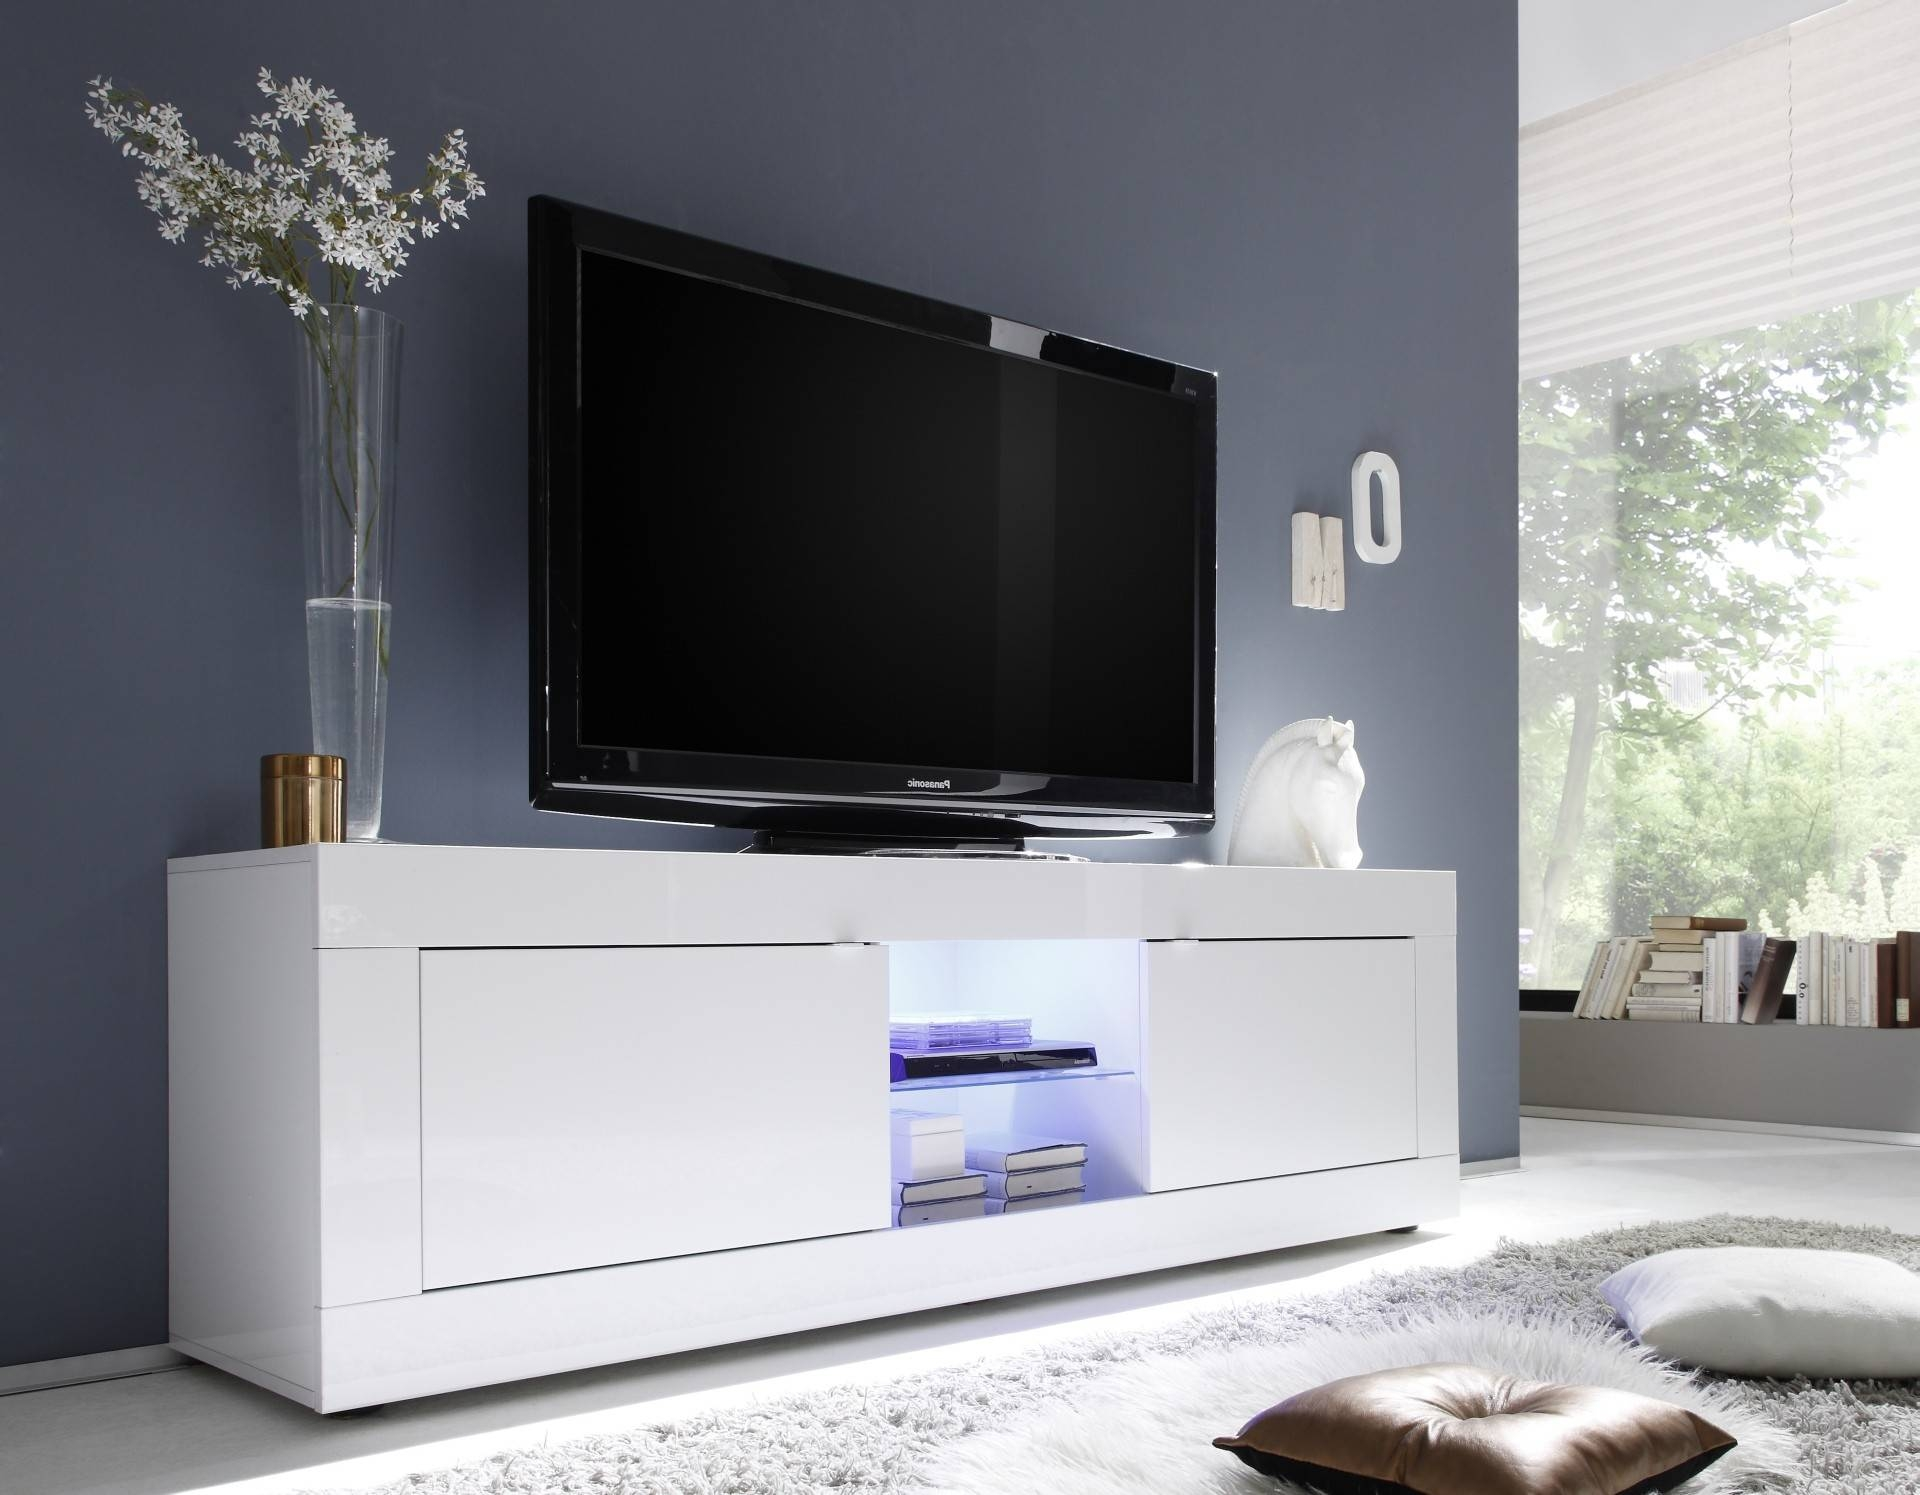 Dolcevita Ii Gloss Tv Stand - Tv Stands - Sena Home Furniture throughout Modern White Gloss Tv Stands (Image 5 of 15)